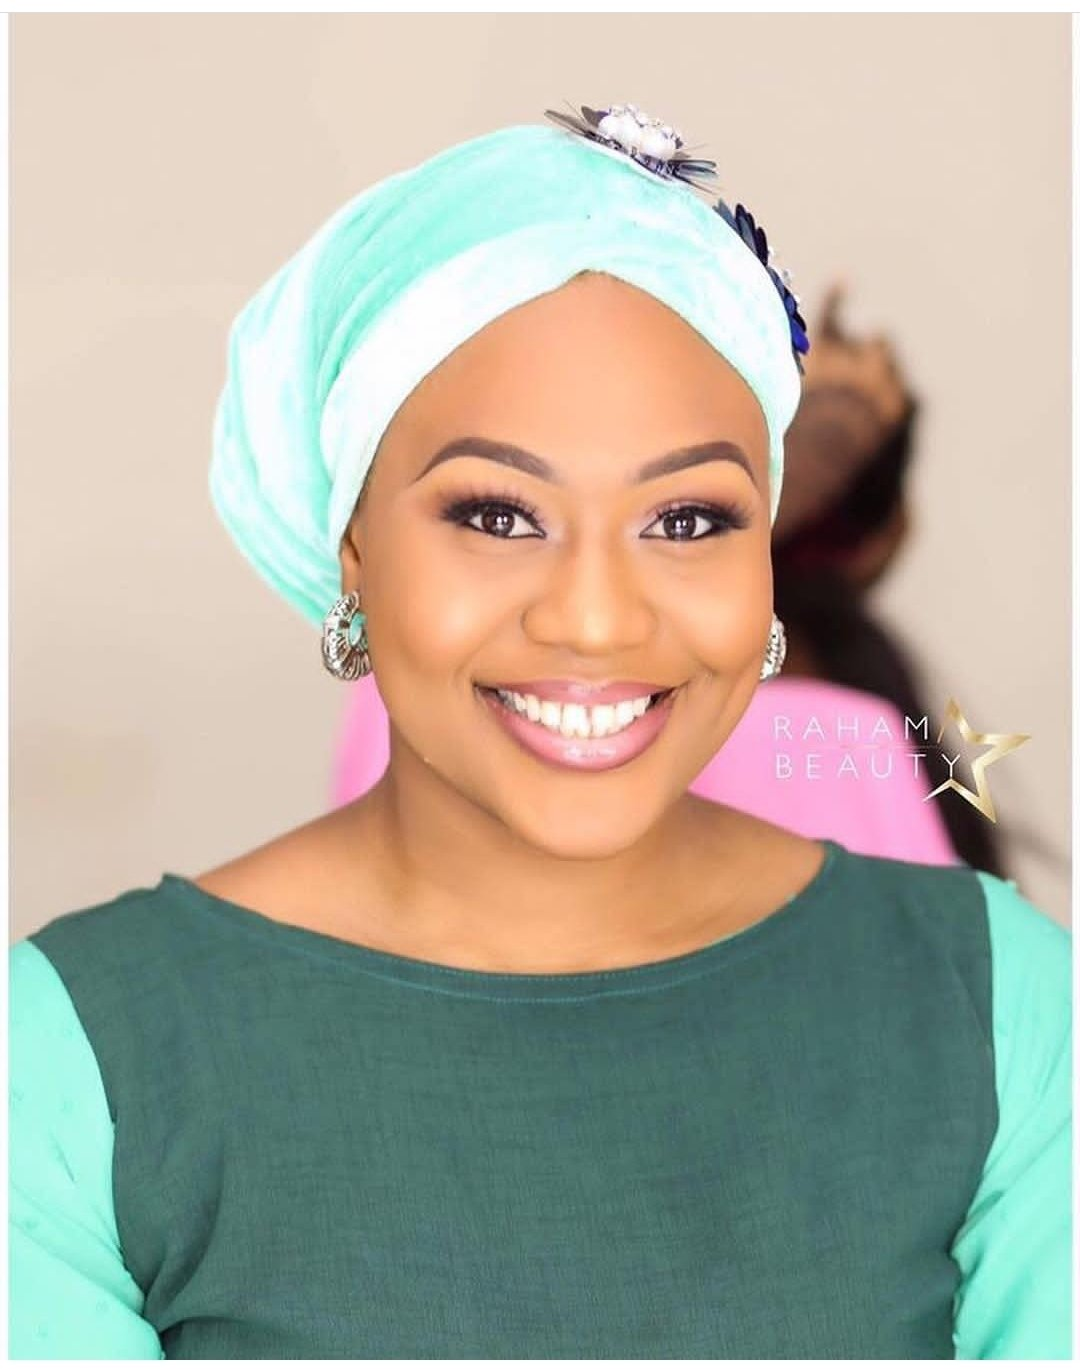 Big Brother Naija's Vandora Looks all Shades of Modesty in these New Photos